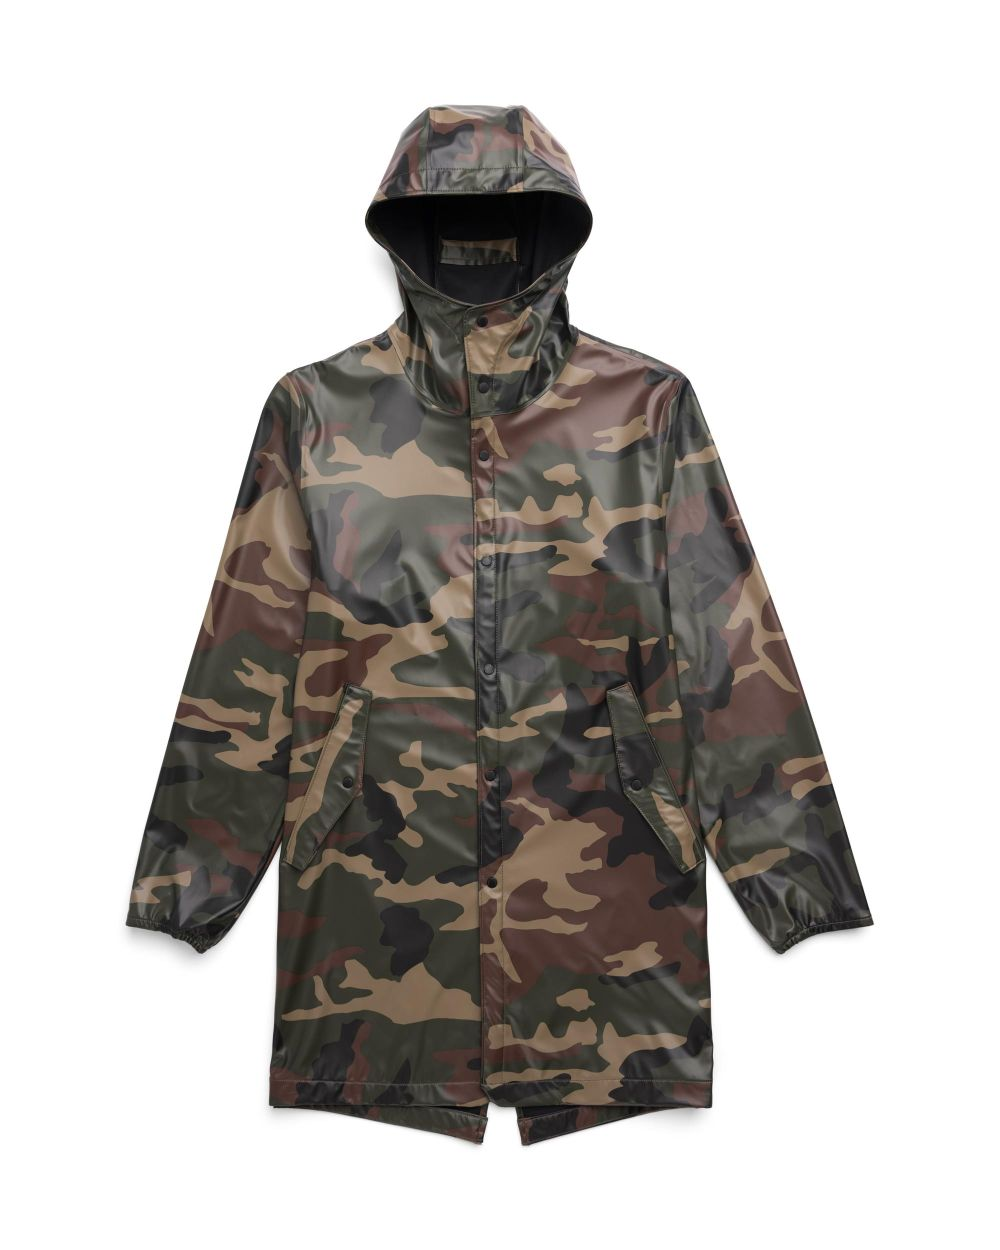 Herschel Supply Men's Rainwear Fishtail - Woodland Camo